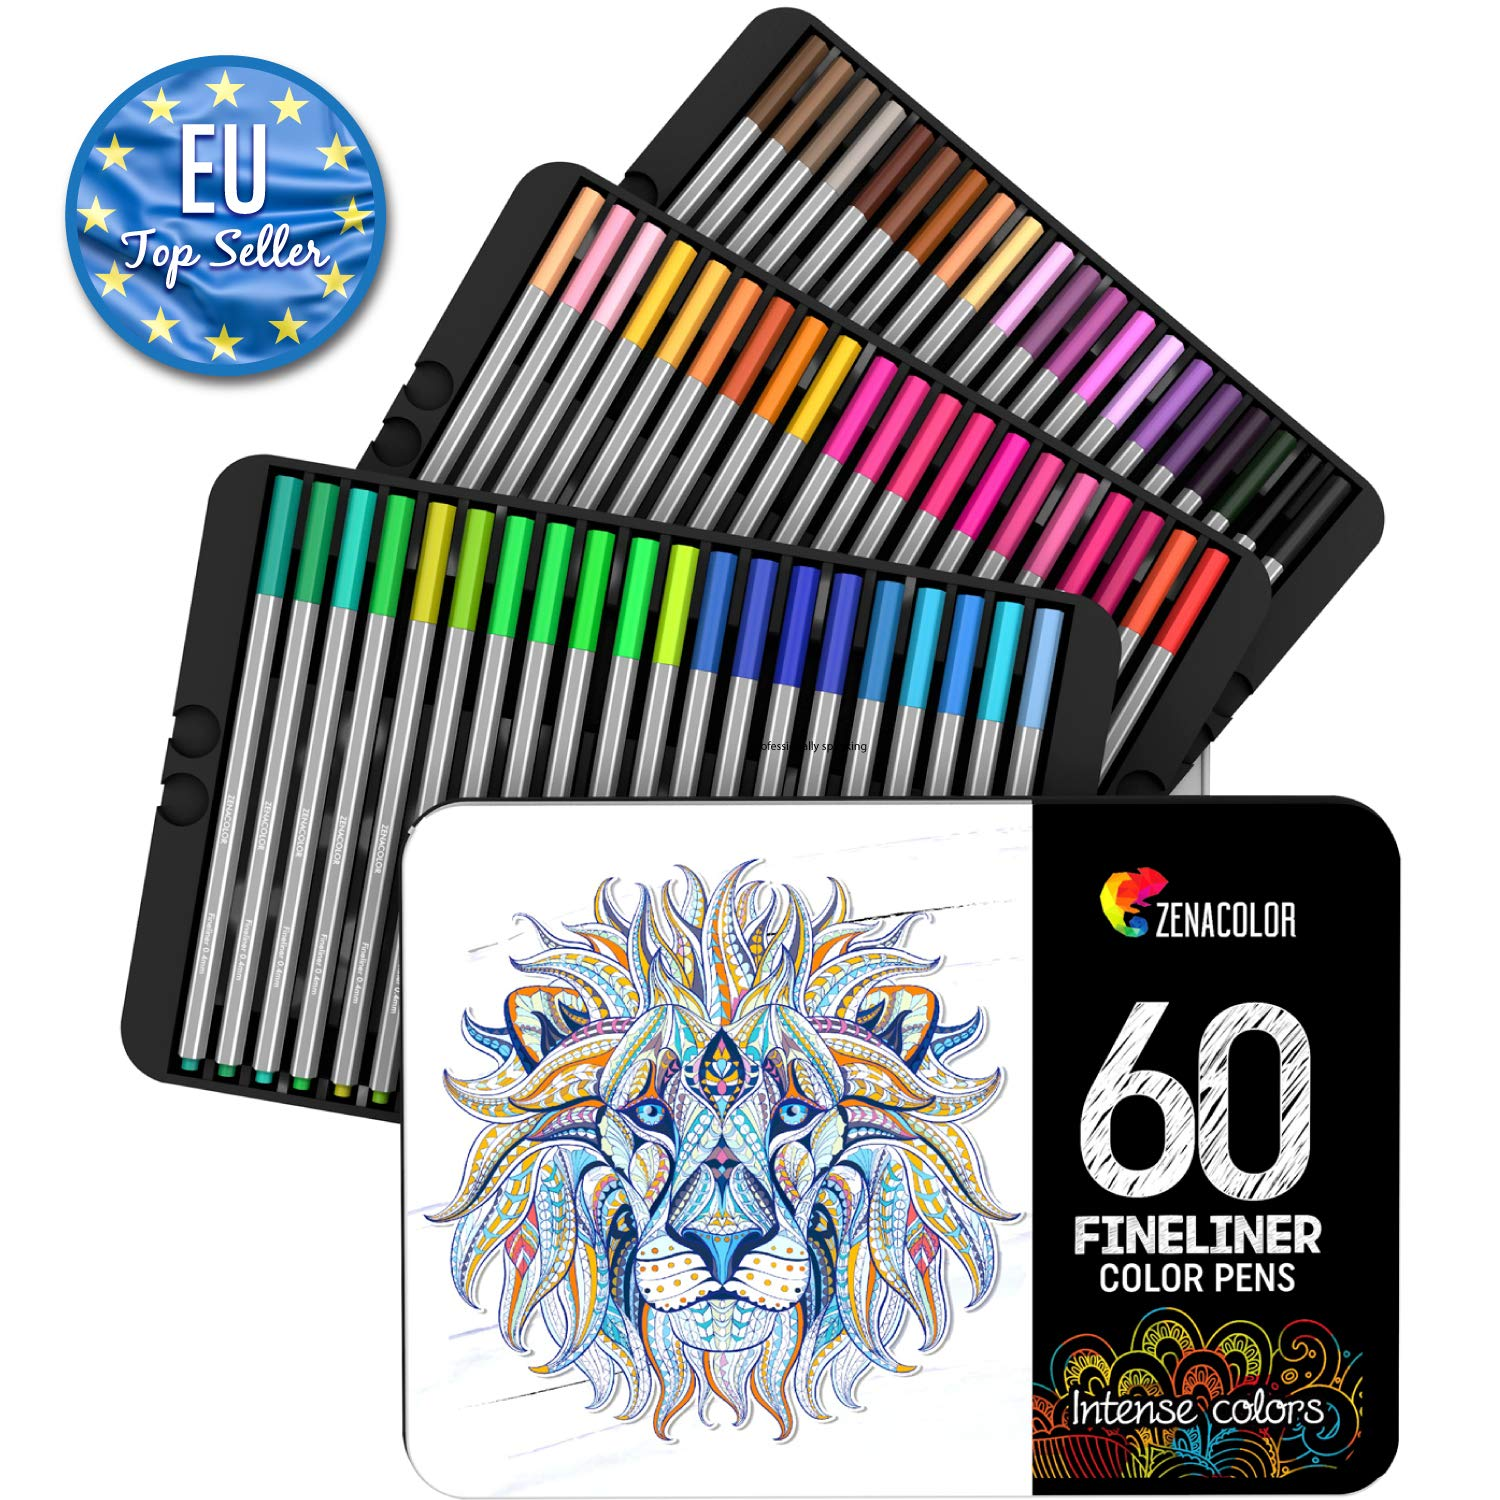 ⭐ 60 Fineliner Pens, Colored Fine Tip Markers - 60 Unique, 0.4 mm, Fine Point Pens for Bullet Journal, Adult Coloring Books - Felt Tip Pens, Art Supplies Colored Pens for Drawings, Journaling by Zenacolor